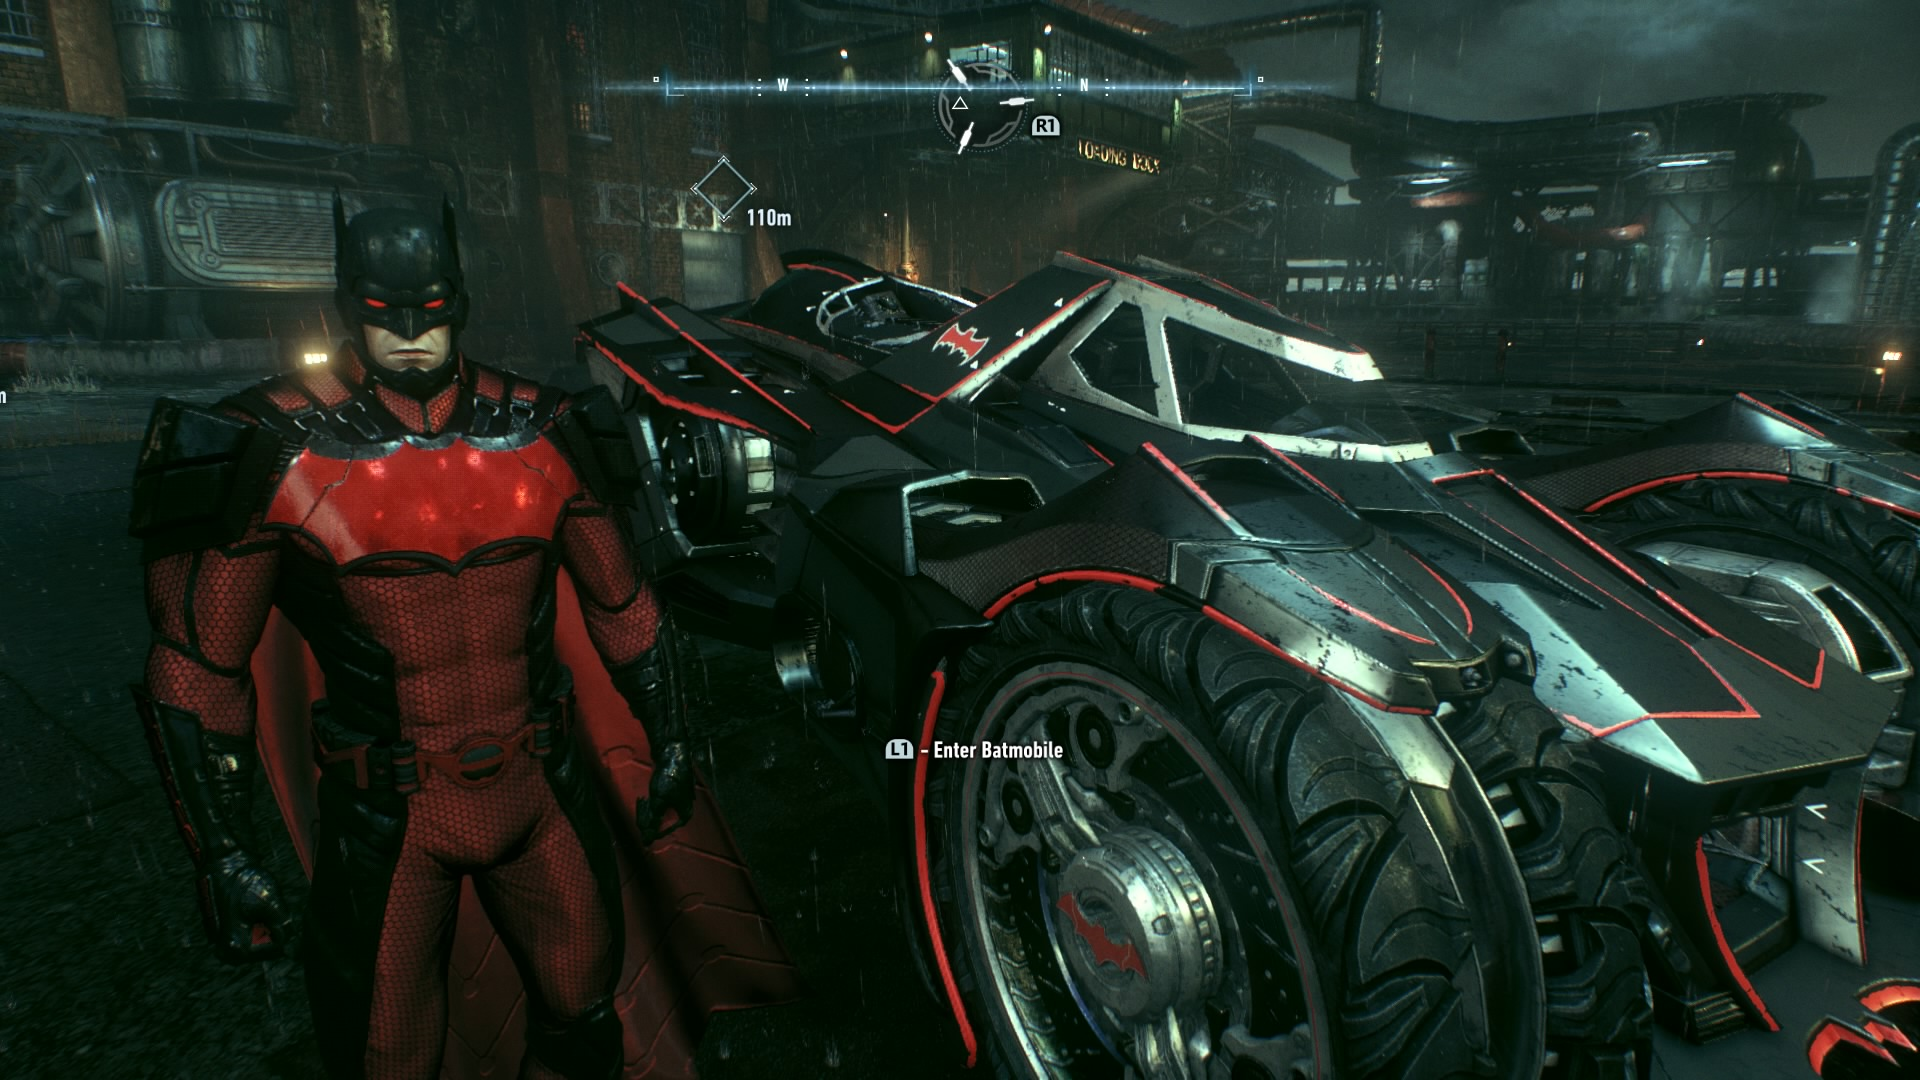 Flashpoint Batman Costume & Batman Arkham Knight Guide: How To Unlock All Costumes Including ...